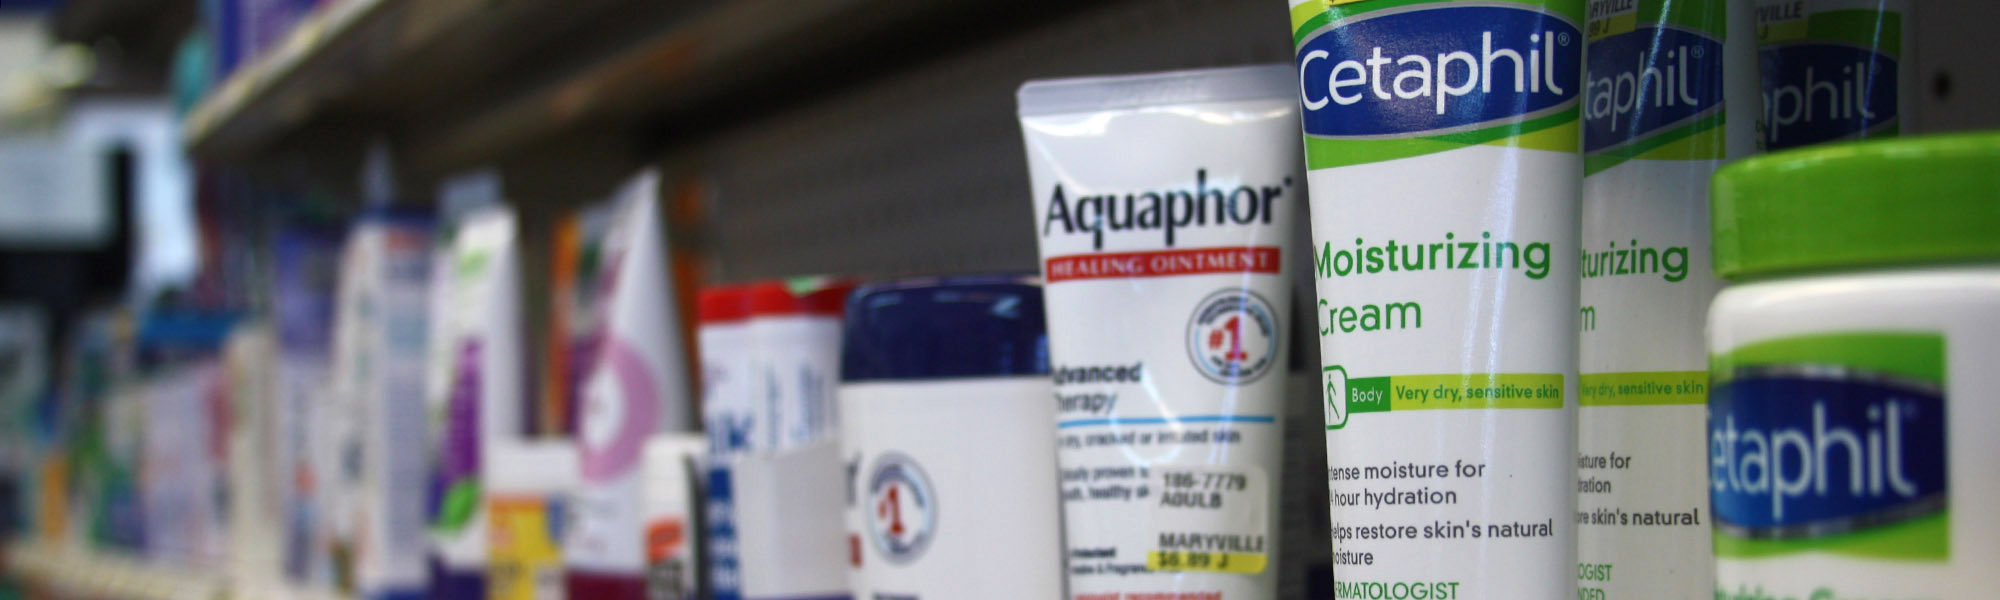 Maryville IL Pharmacy Personal Care Products